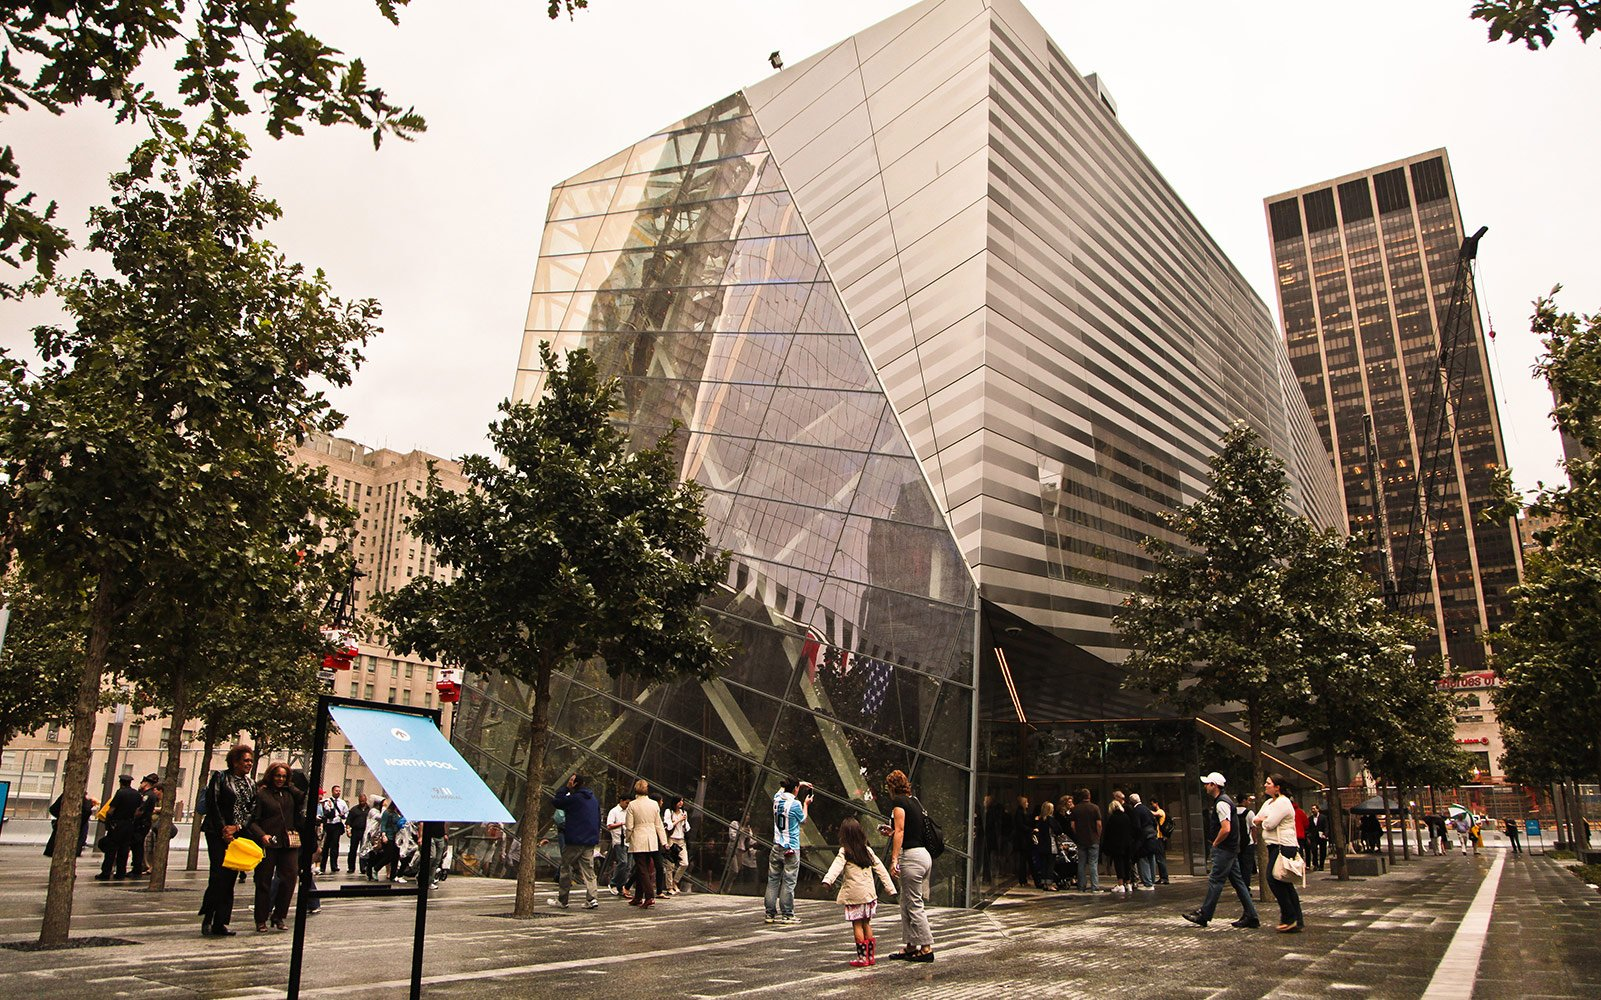 """Itinerary for the day: Depart O'Hara parking lot by 9am sharp. Arrive in front of the 9/11 Memorial around 11:00 or 11:15, You have time to wander around and grab a bite to eat before we line up at the group entrance at 12:15 for our 12:30 tour. This is not a guided tour it is very self explanatory with audio and video as you move through the museum. Be prepared for a highly emotional experience as you relive the day the entire world held its breath. You may stay as long as you like in the museum, two to three hours should allow you to experience everything. If you are interested in joining us for a tour of the newly opened """"ONE WORLD OBSERVATORY"""", I have scheduled this tour for 3:30. it is in the same location as the museum so we will just walk over. The SkyPod Elevators climb 102 stories in 47 seconds. This astonishing ride reveals the transformation of New York City from unsettled lands to today's remarkable forest of skyscrapers. See """"Forever Theater"""" where you are surrounded with the rhythms of the city. This heart-pumping audiovisual experience sets up your first glimpse of the spectacular skyline. It will take your breath away! The Sky Portal is a 14 foot wide circular glass disc that offers an unforgettable perspective using high definition footage of the streets 100 floors below. Estimated time spent on this tour is 45 min to an hour. There are restaurants right in the Observatory if you choose to stay and eat. You do have free time until the bus departs at 6:30 sharp!  THERE ARE SEVERAL OTHER PLACES TO EAT CLOSE BY, BROOKFIELD PLACE IS JUST ACROSS WEST STREET RIGHT ON THE HUDSON. IT'S A BRAND NEW BEAUTIFUL MALL WITH A FABULOUS FOOD COURT AND BEAUTIFUL VIEWS OF THE HUDSON, O'HARA'S GROUND ZERO PUB IS JUST A BLOCK AWAY FROM THE MUSEUM AT 120 CEDAR STREET, A TRADITIONAL IRISH WATERING HOLE HAS BECOME A POWERFUL MONUMENT OF I'S OWN.  PLEASE BOARD THE BUS BY 6:20 FOR OUR RETURN TO SPRINGFIELD BY 9PM!    TO SIGN UP FOR THIS TRIP, CHECKS CAN BE MAILED TO """"BROADWA"""